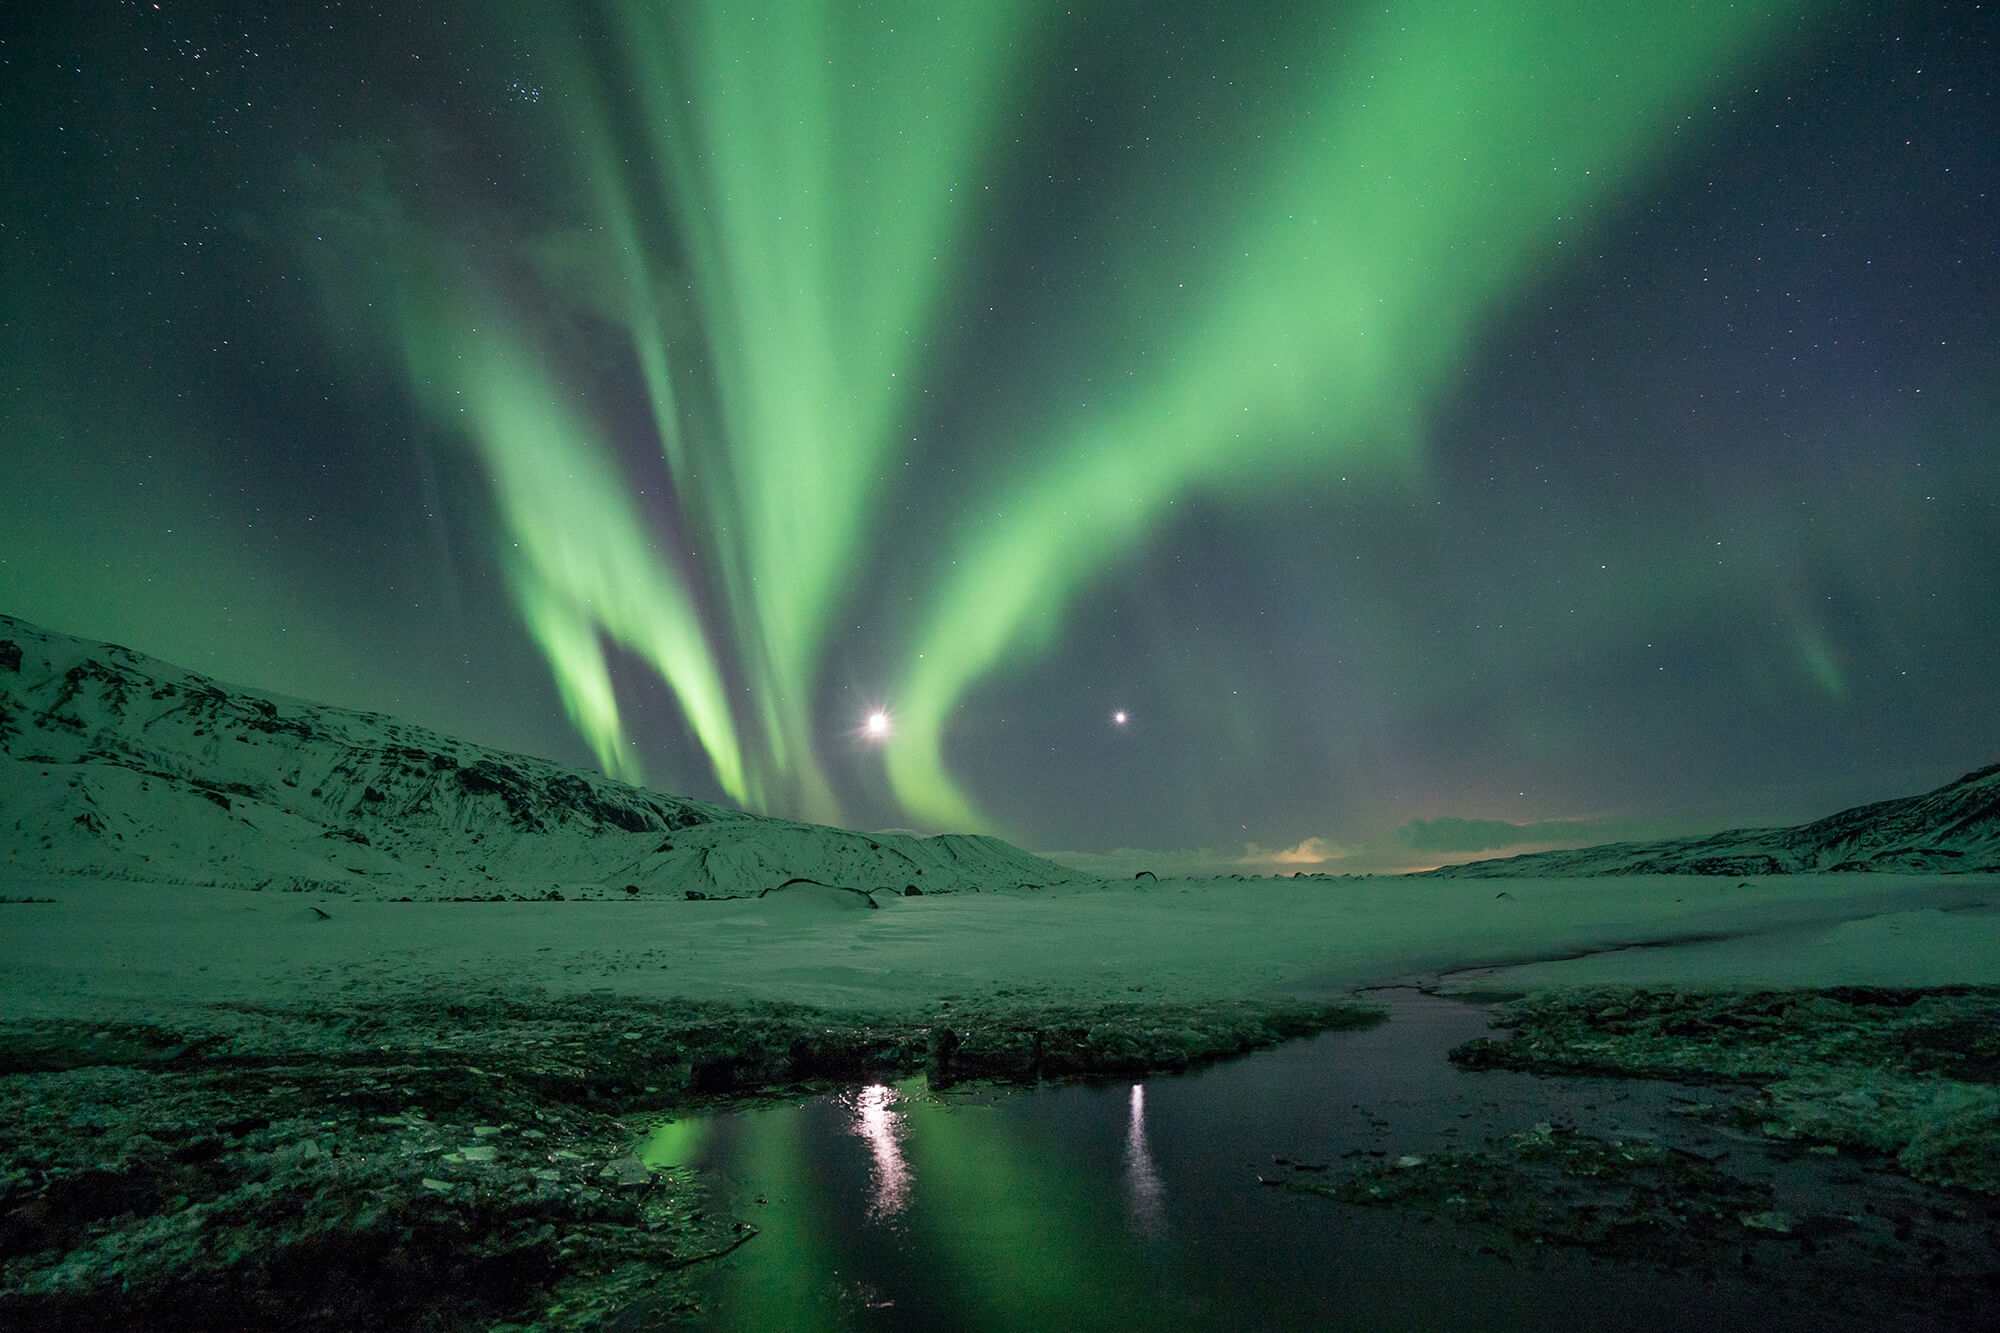 Northern lights over snowing ground